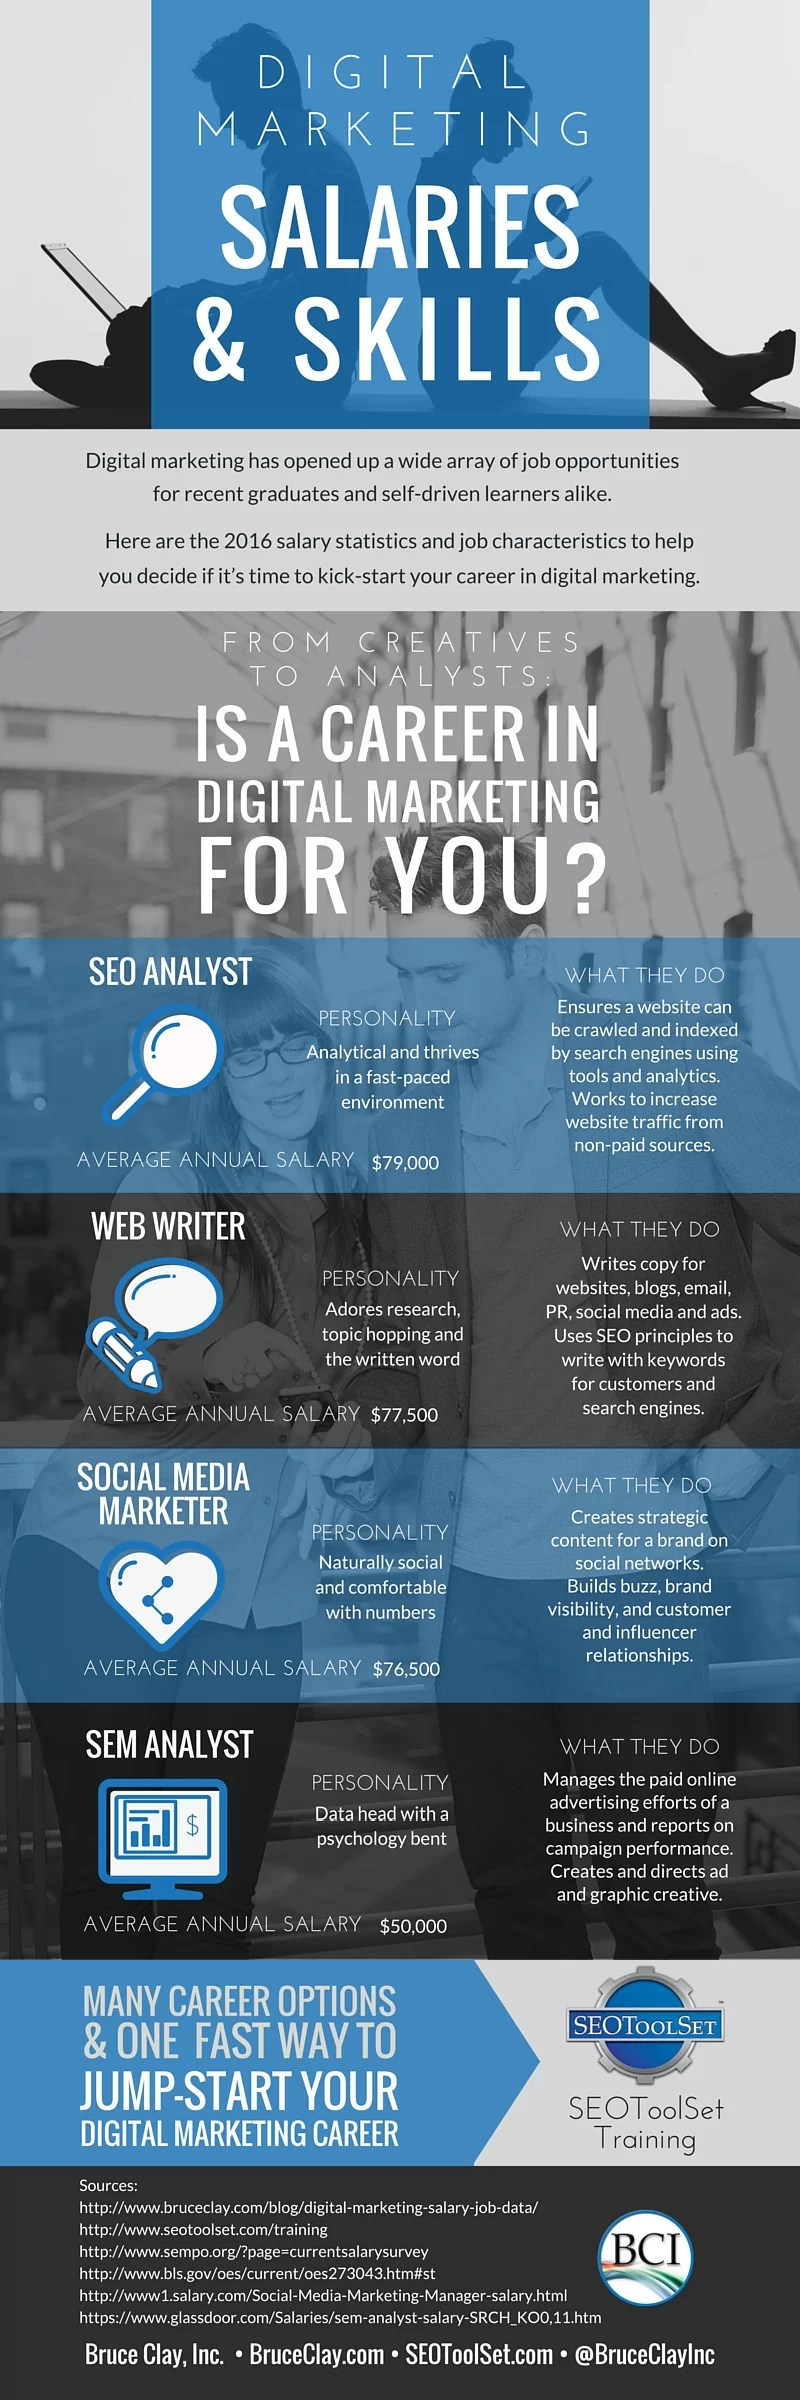 4 Hot Digital Marketing Jobs with Salary Data